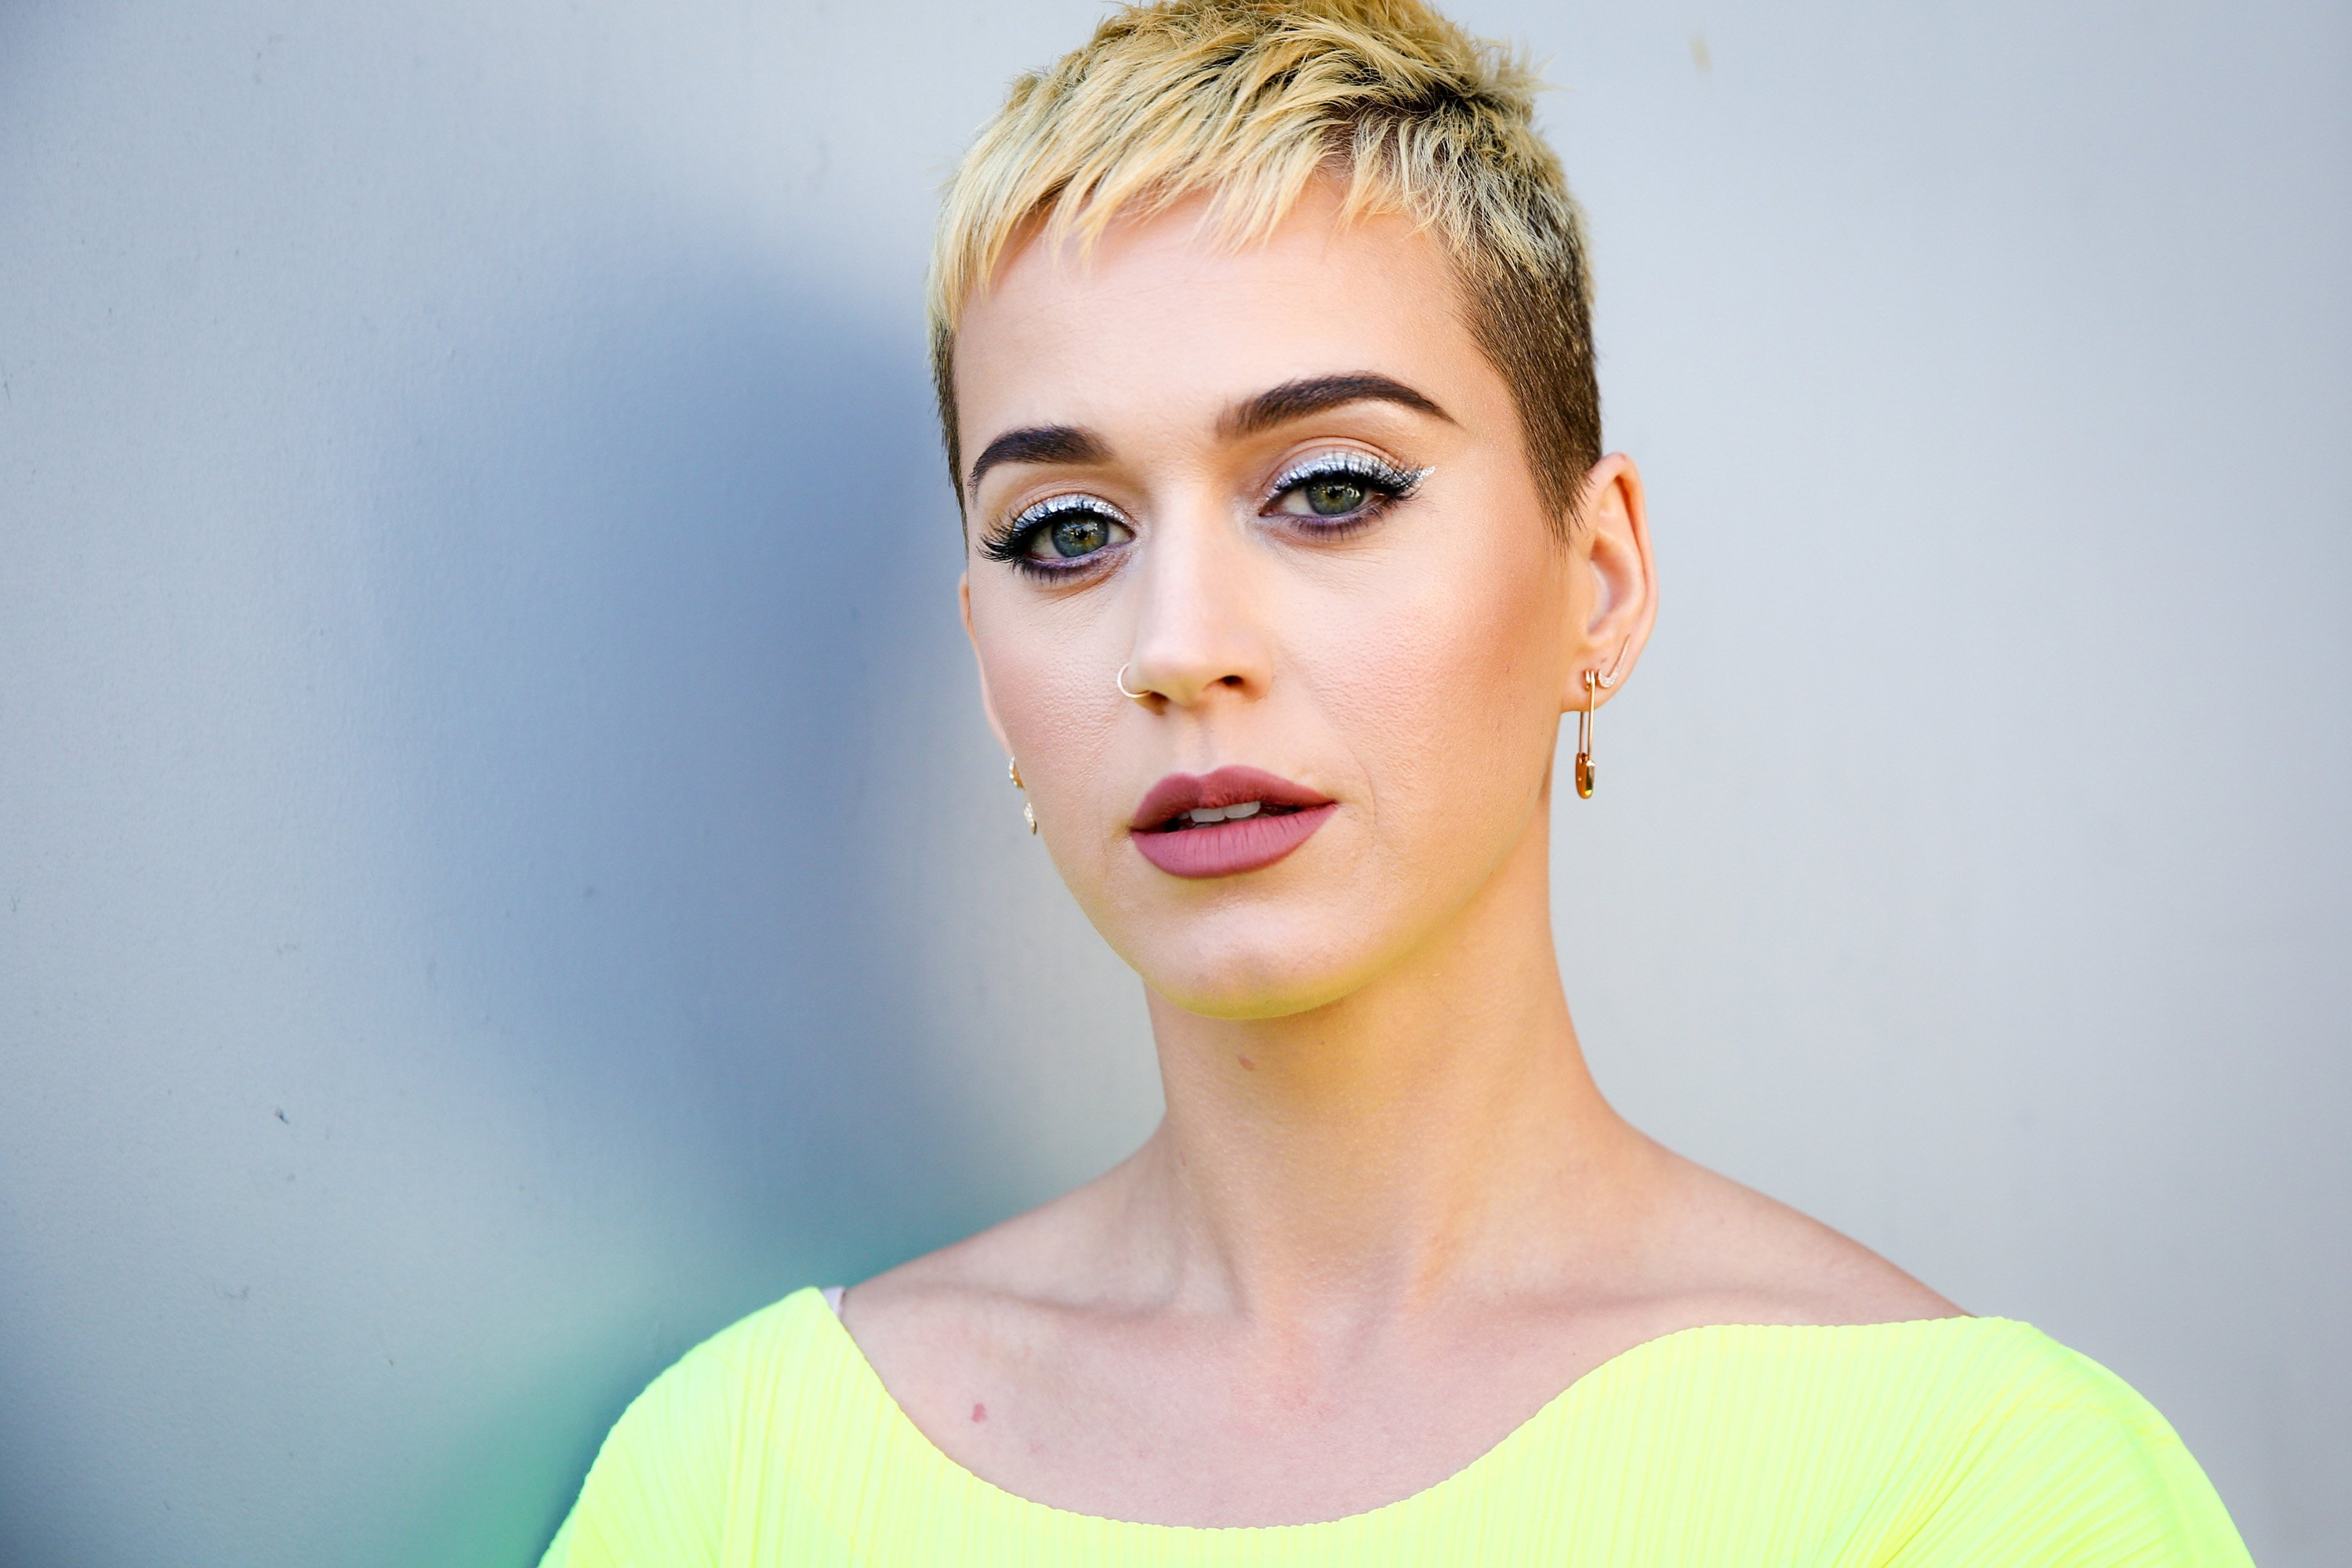 Katy Perry short pixie hairstyles 2018